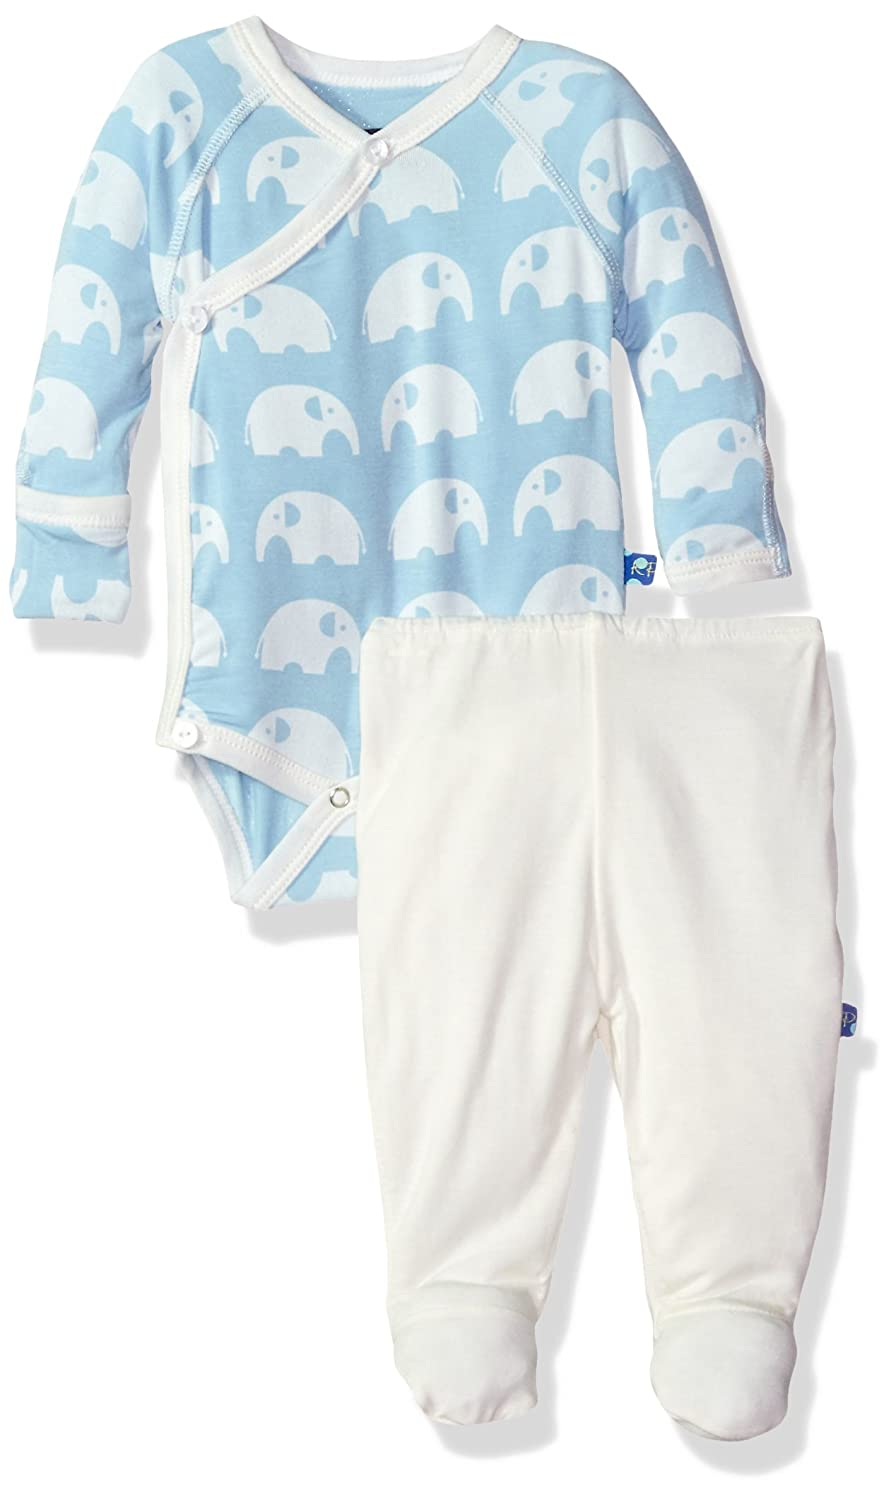 KicKee Pants Baby Boys Essentials Kimono Newborn Gift Set with Box